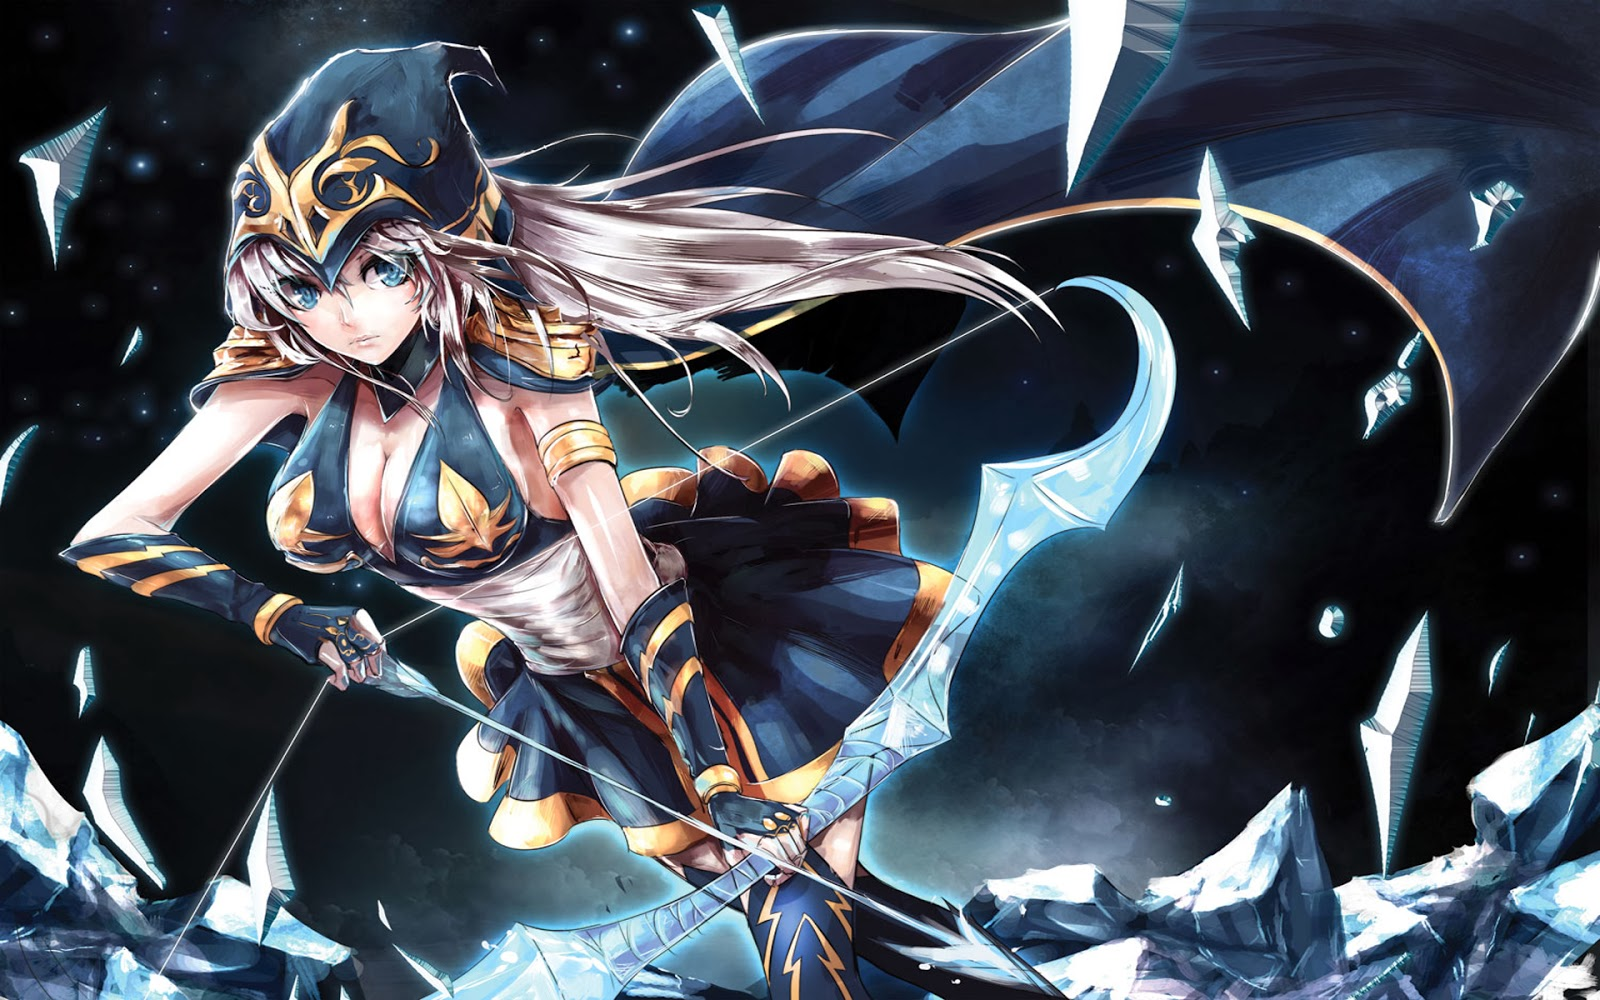 Ashe Leauge of Legends Anime Style j5 Wallpaper HD